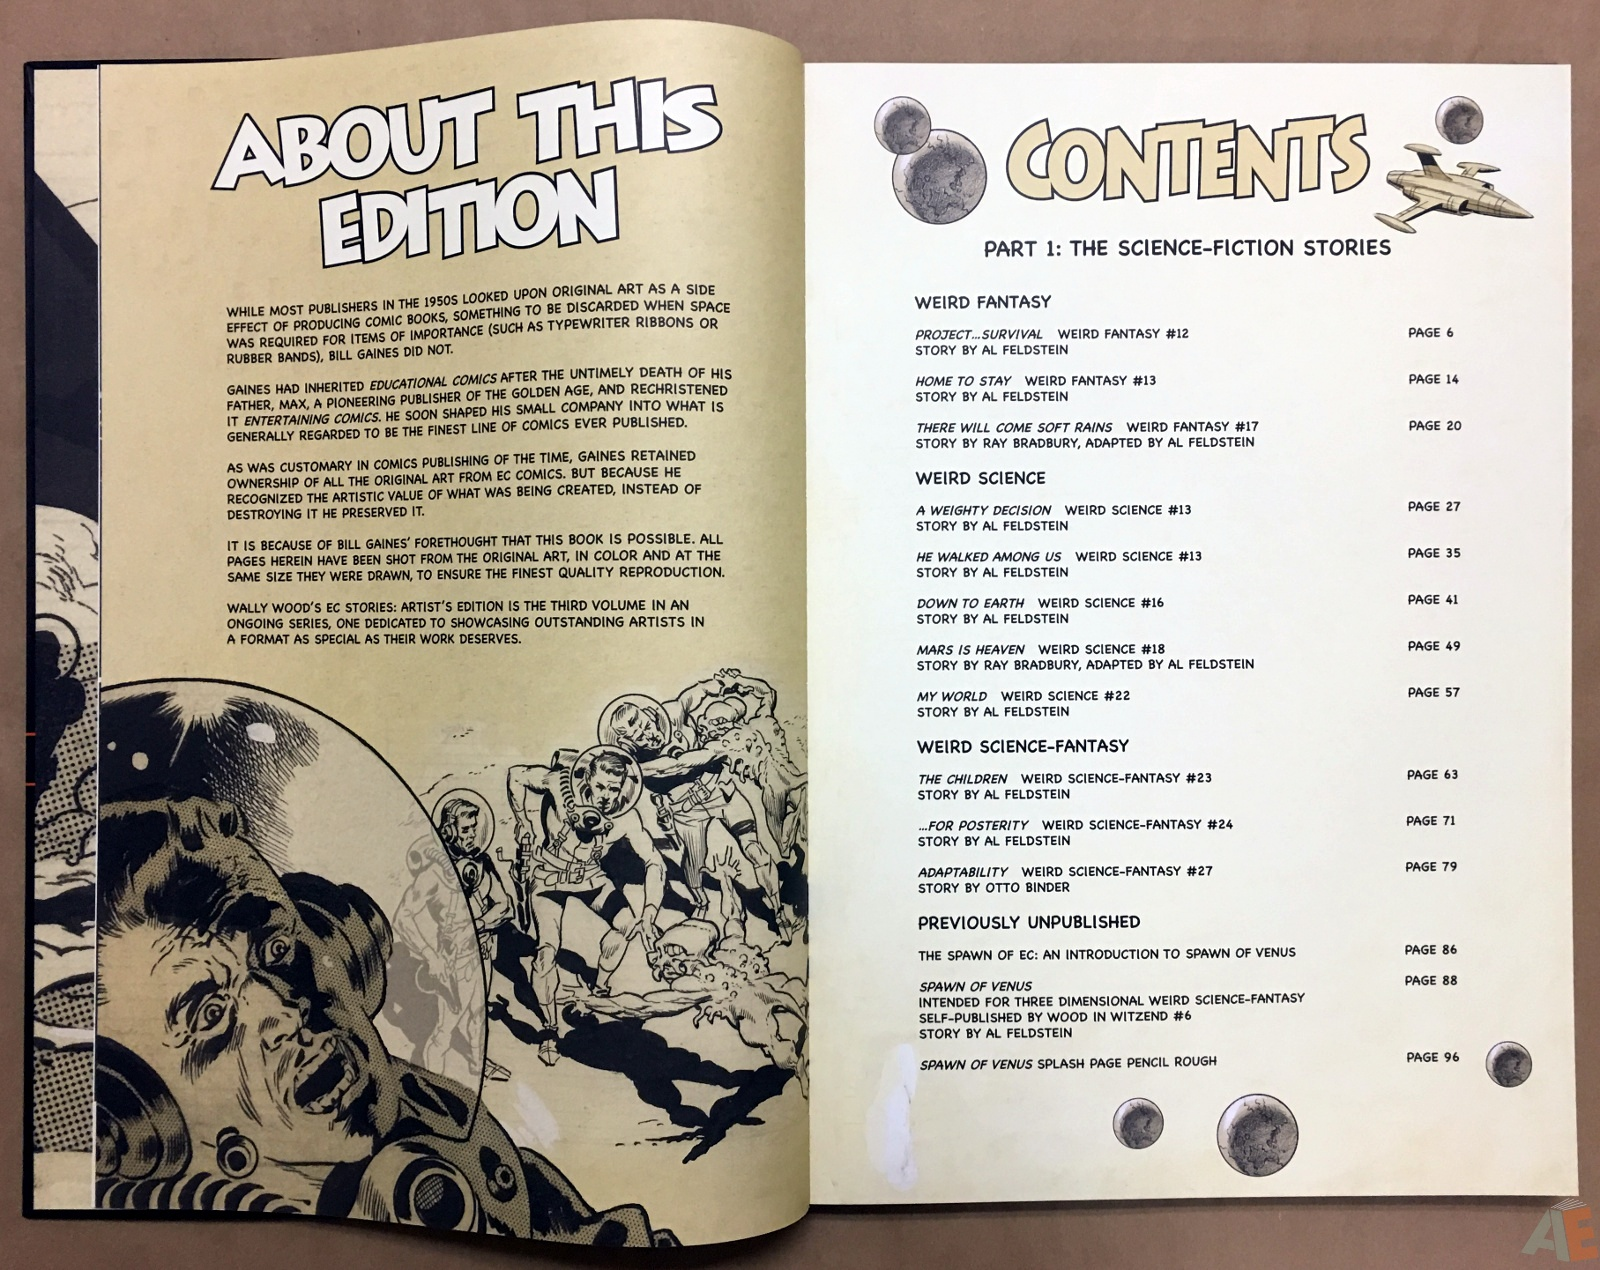 Wally Wood's EC Stories Artist's Edition 6